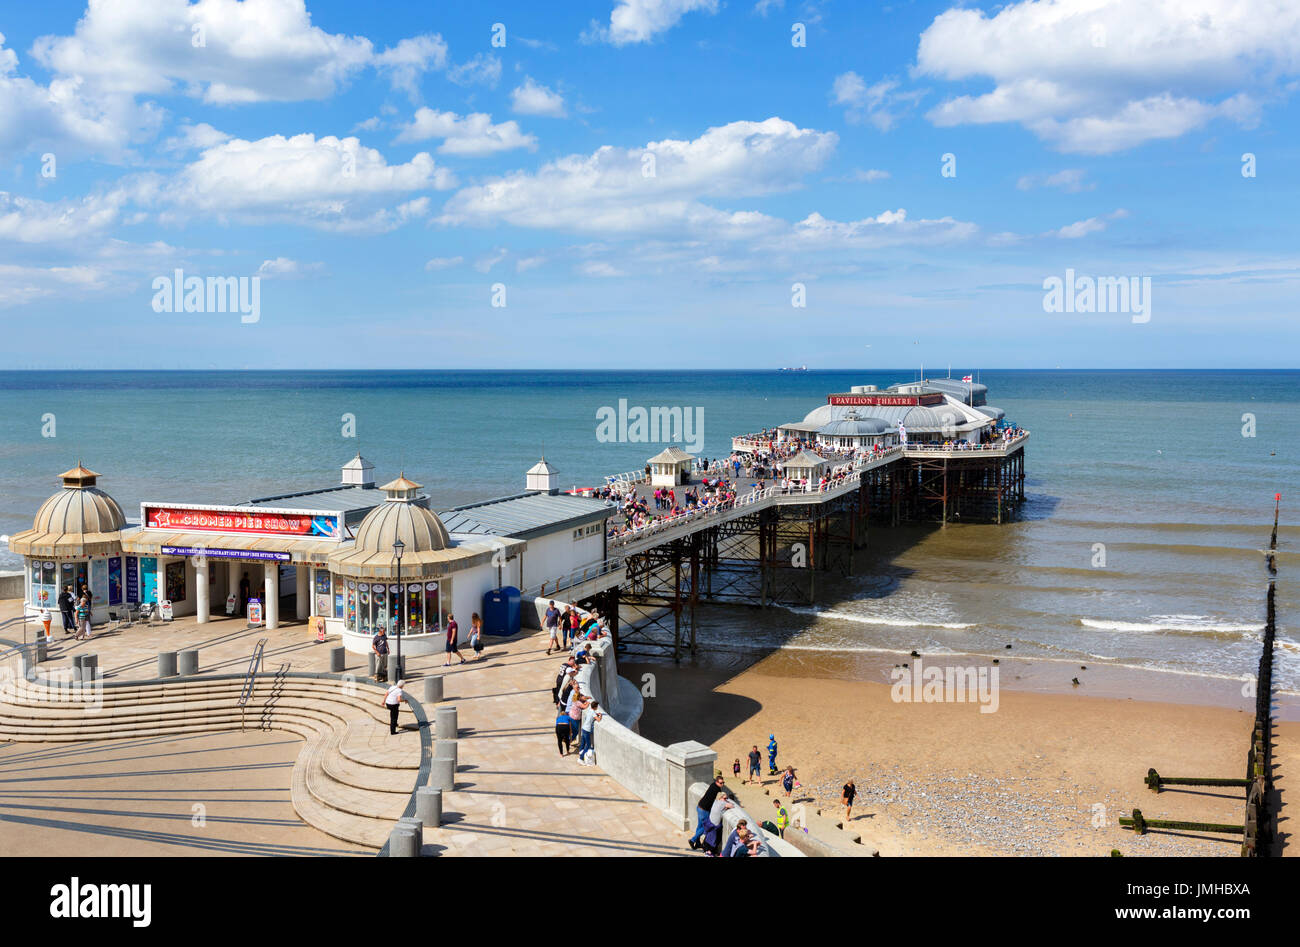 Cromer Pier. Beach and pier in Cromer, Norfolk, England, UK - Stock Image